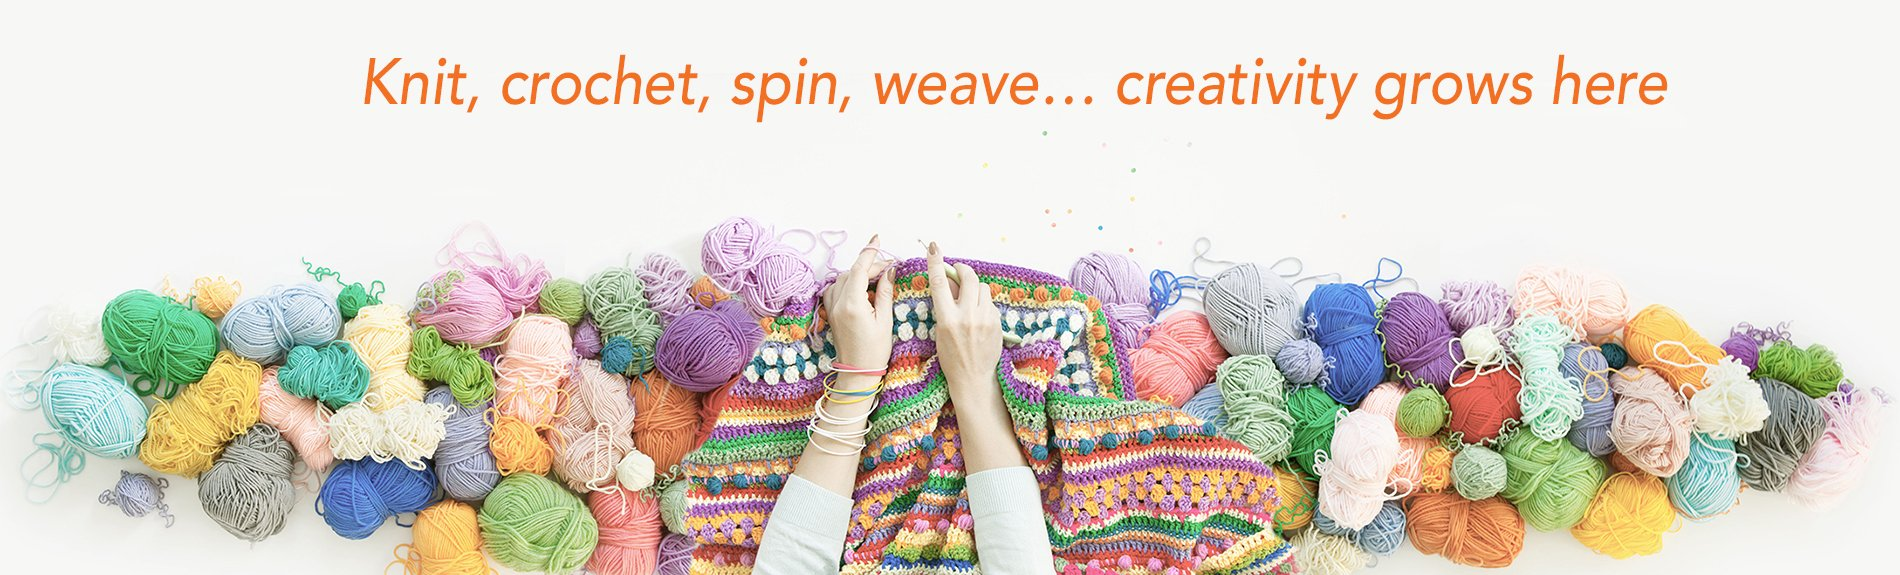 The Yarn Patch | Home | Crossville, TN